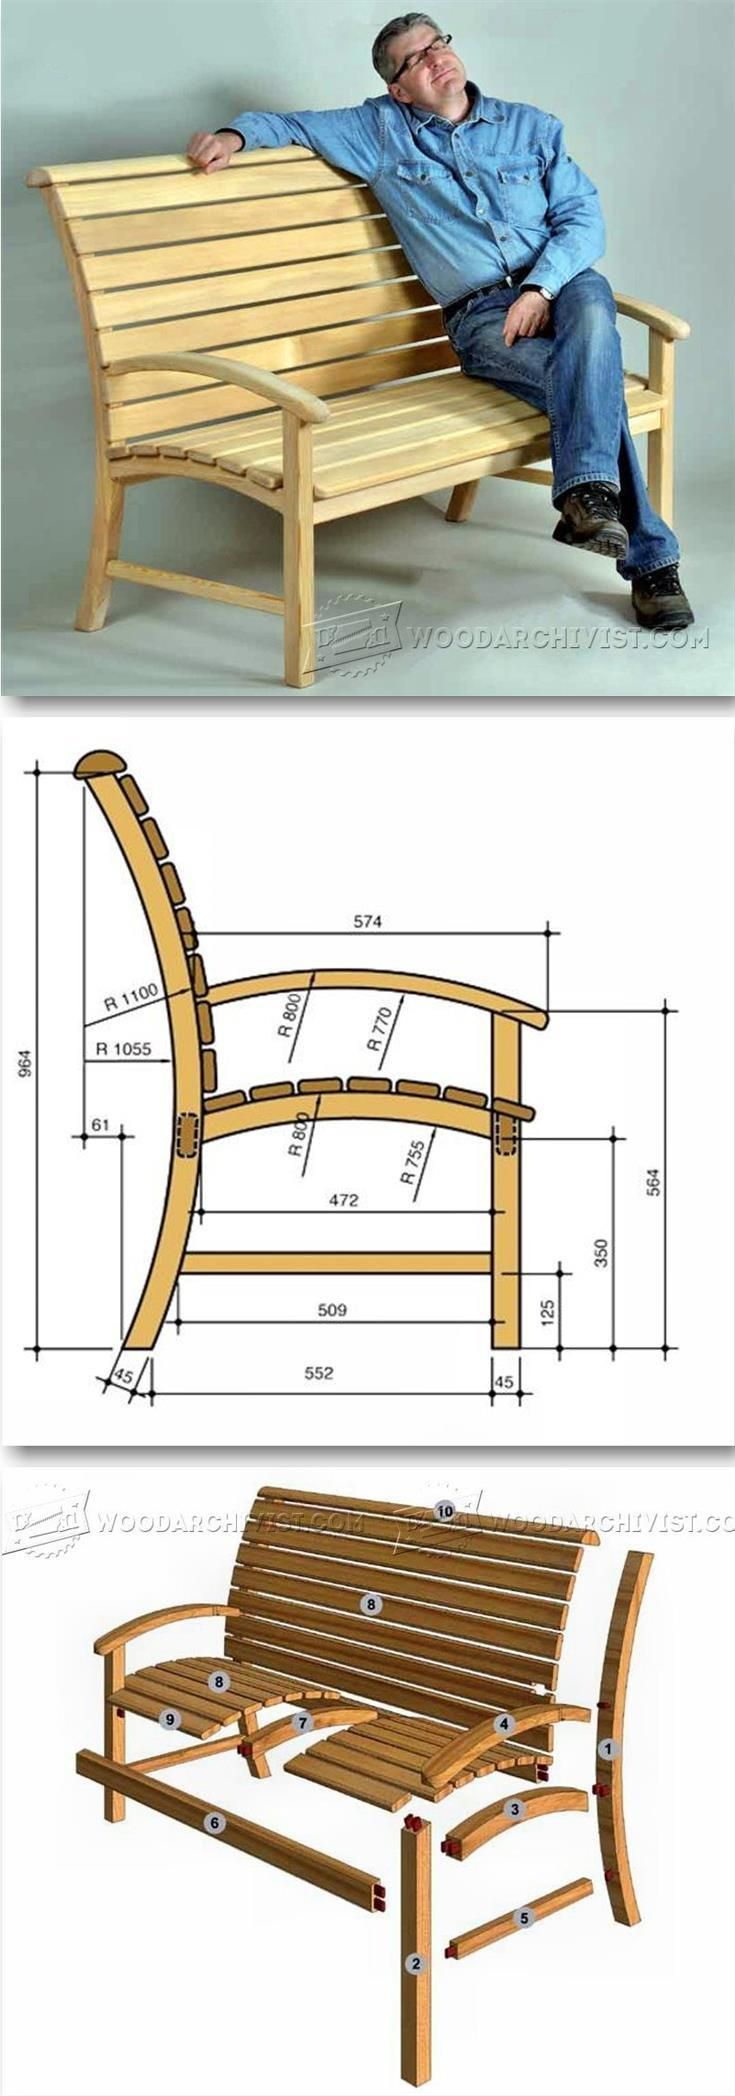 Garden Seat Plans   Outdoor Furniture Plans and Projects   WoodArchivist com. 447 best Clever Wood Plans images on Pinterest   Furniture